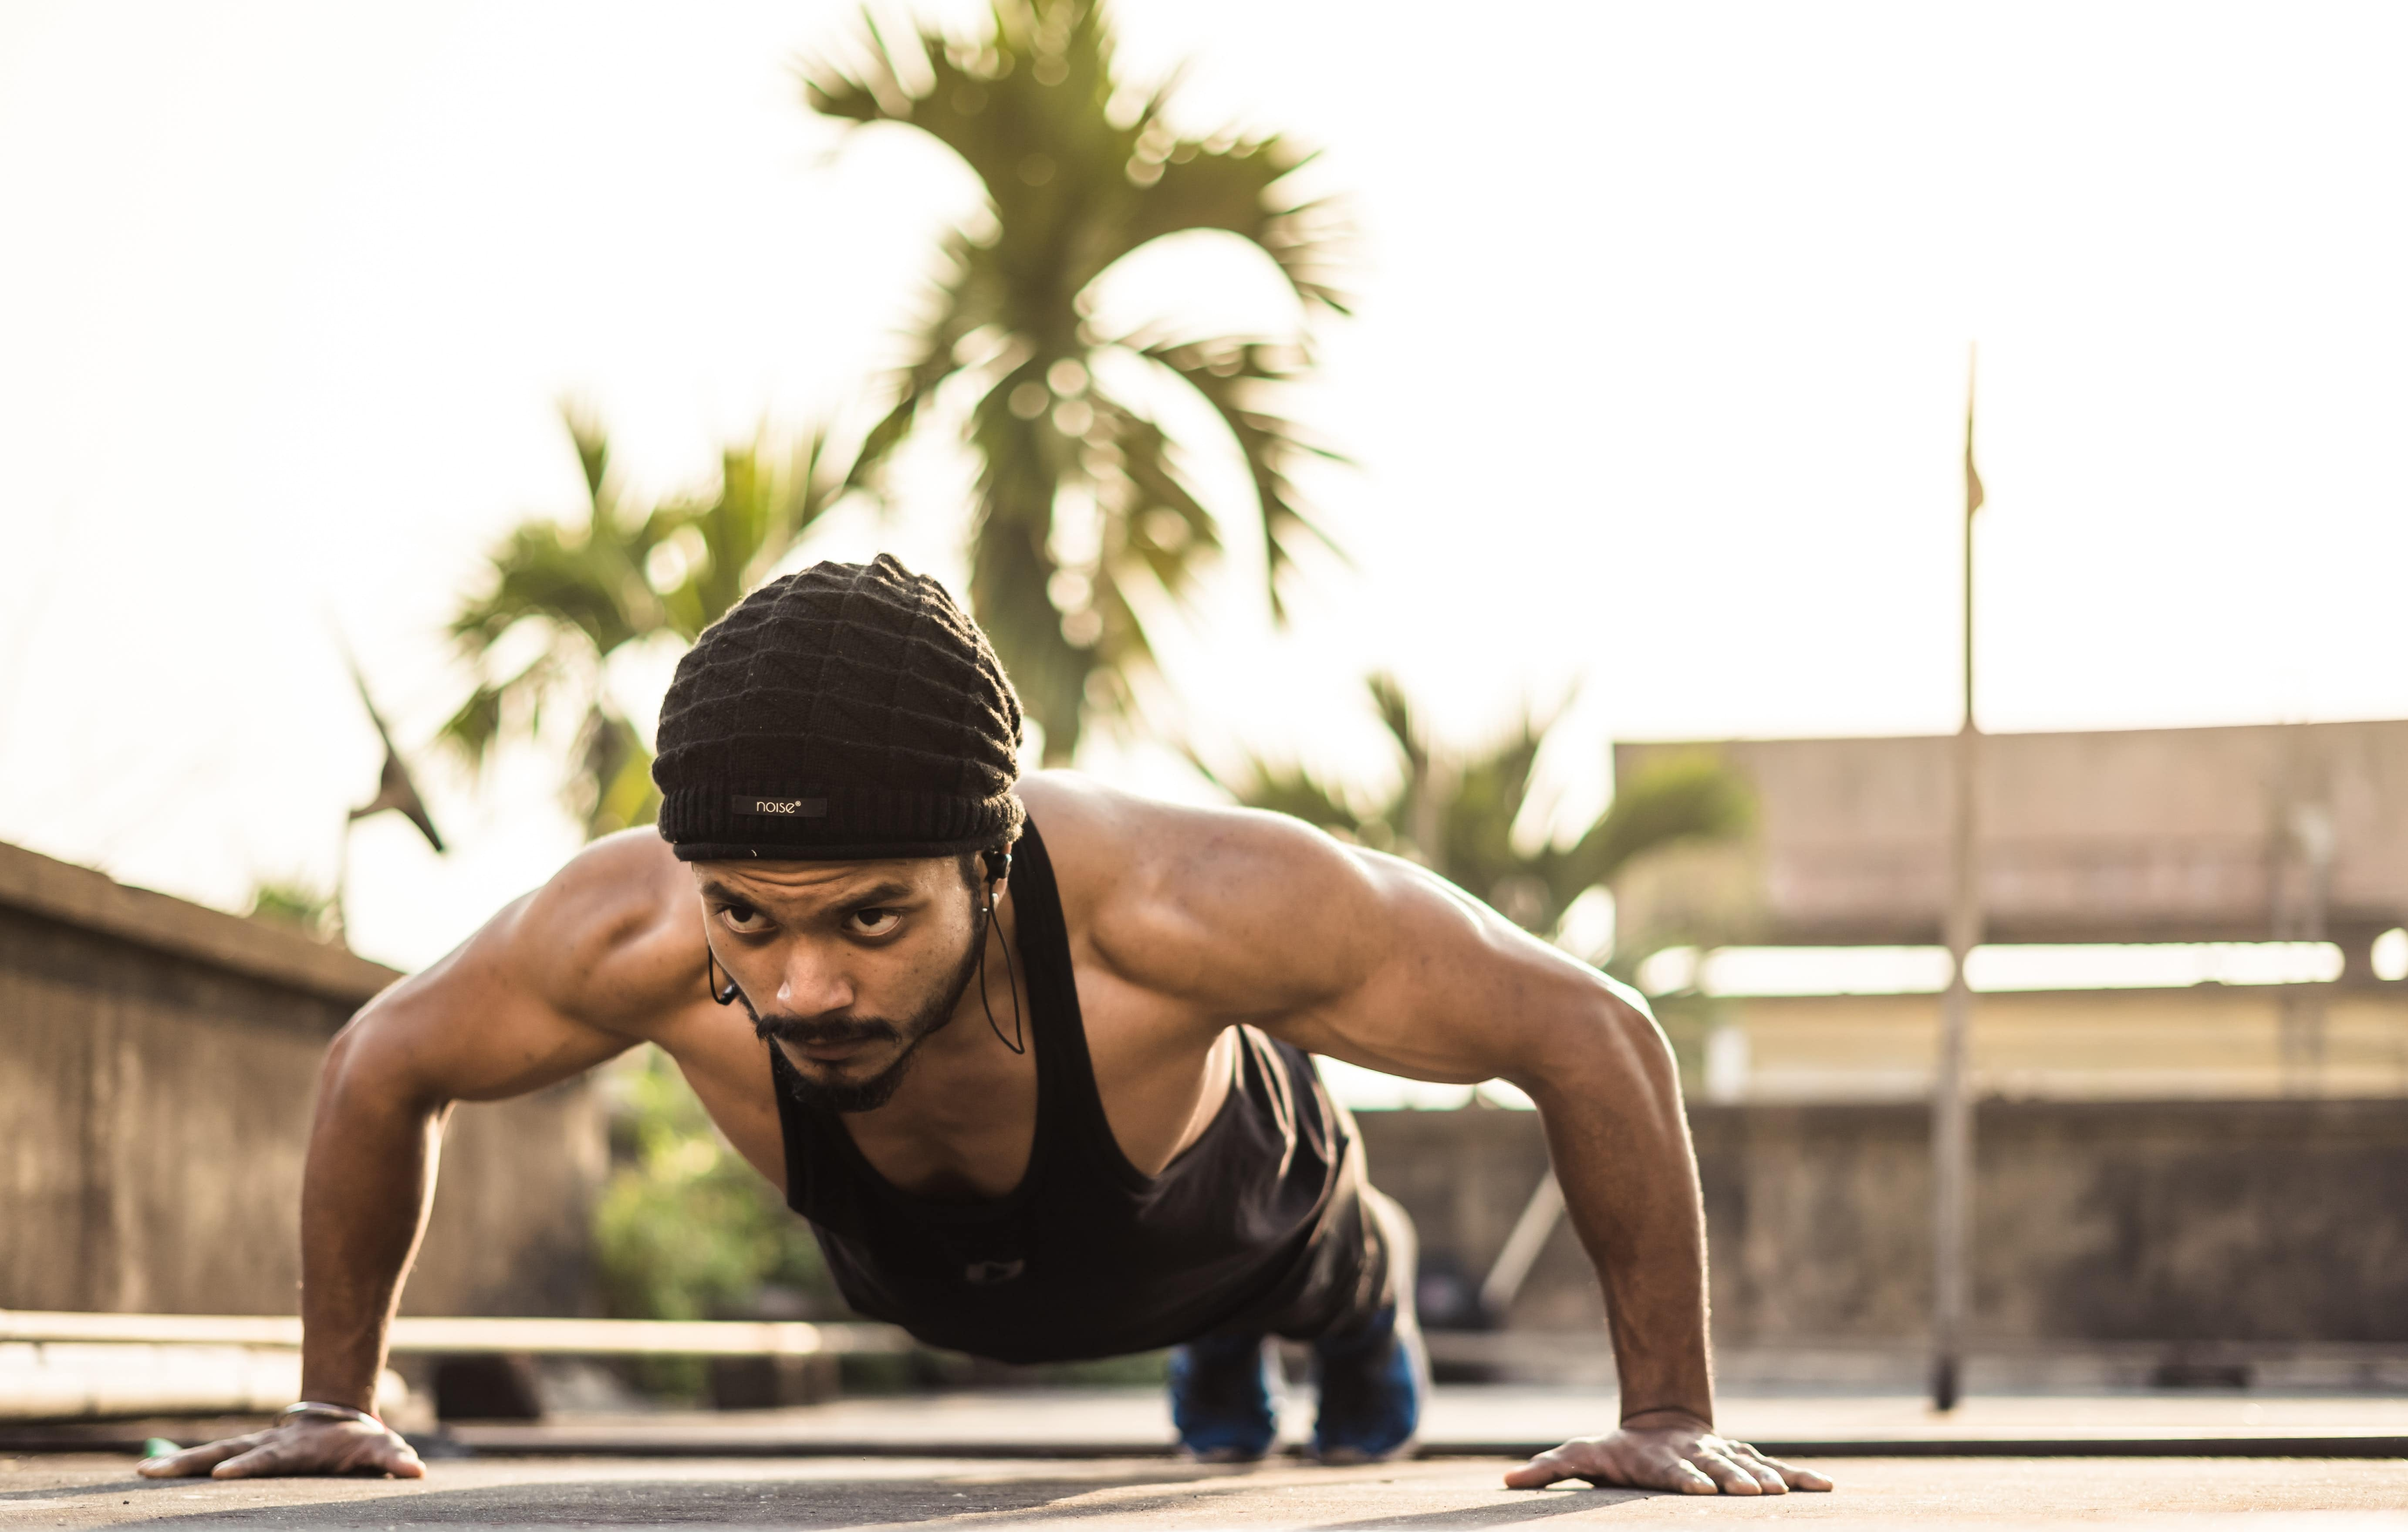 Image of a man doing push ups in a outdoor space